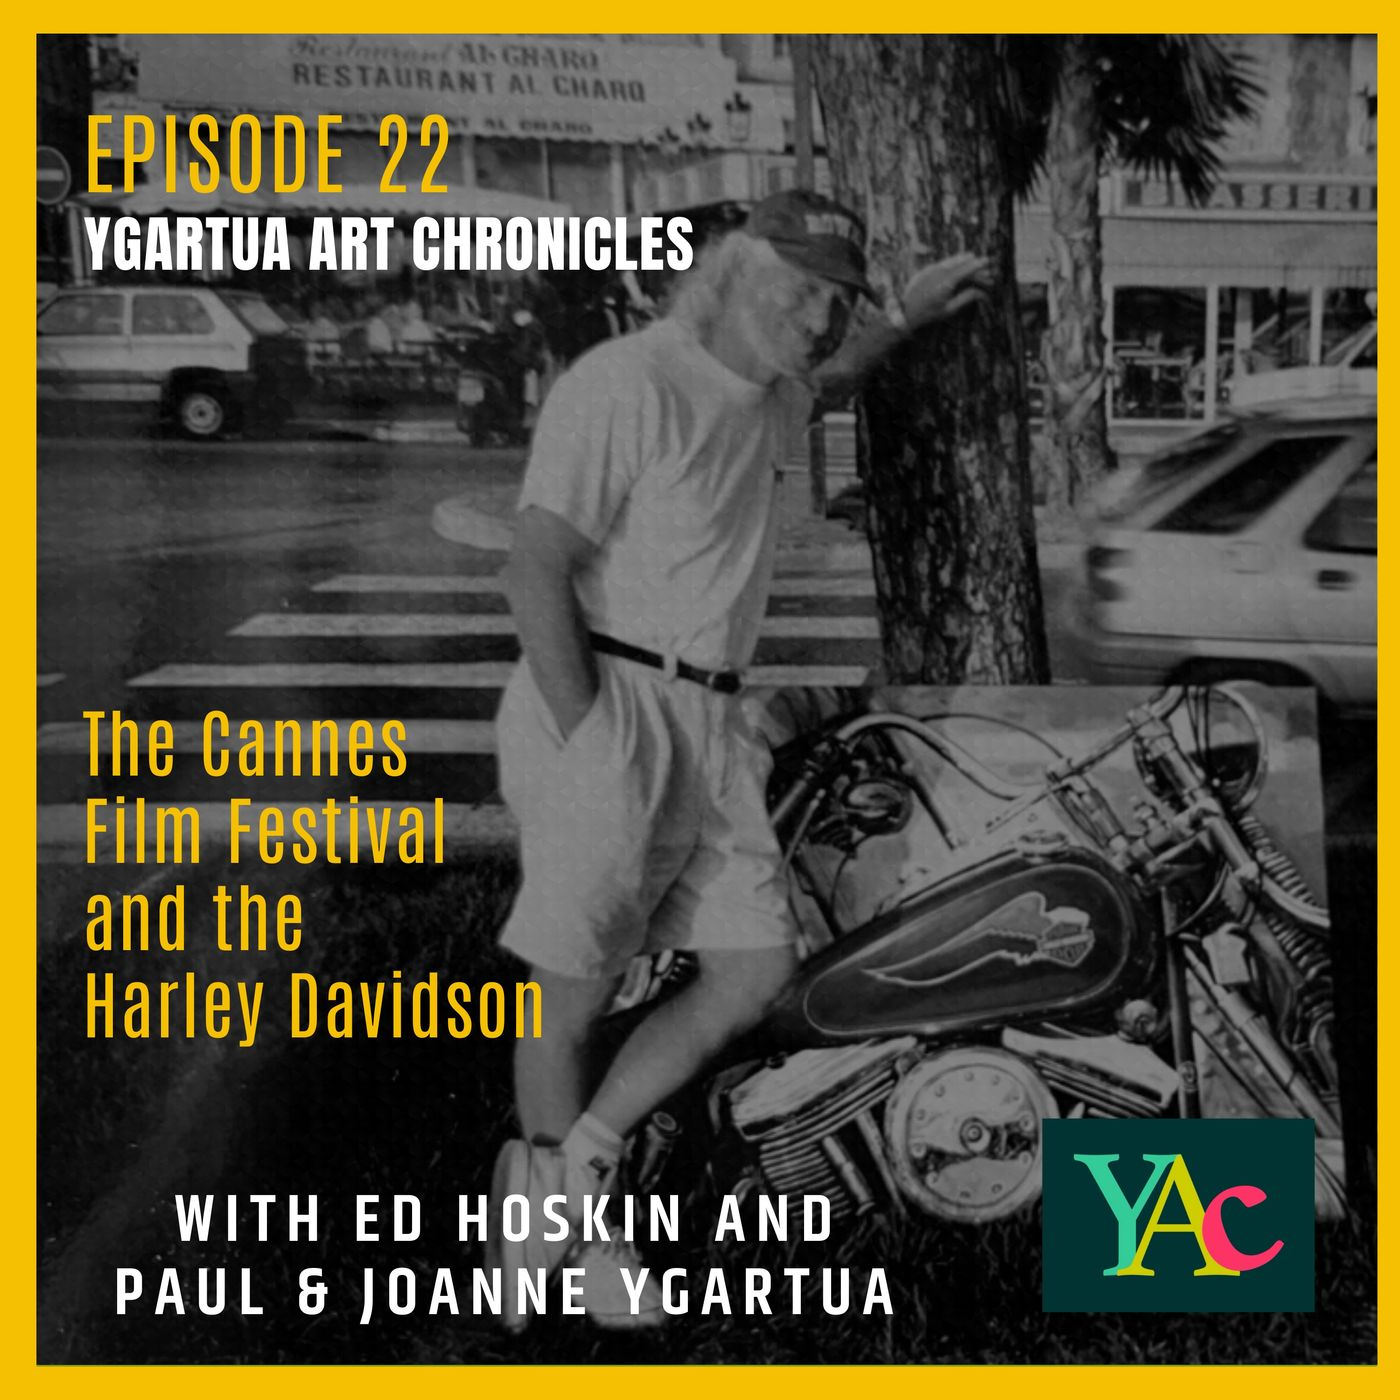 Episode 22: The Cannes Film Festival and the Harley Davidson